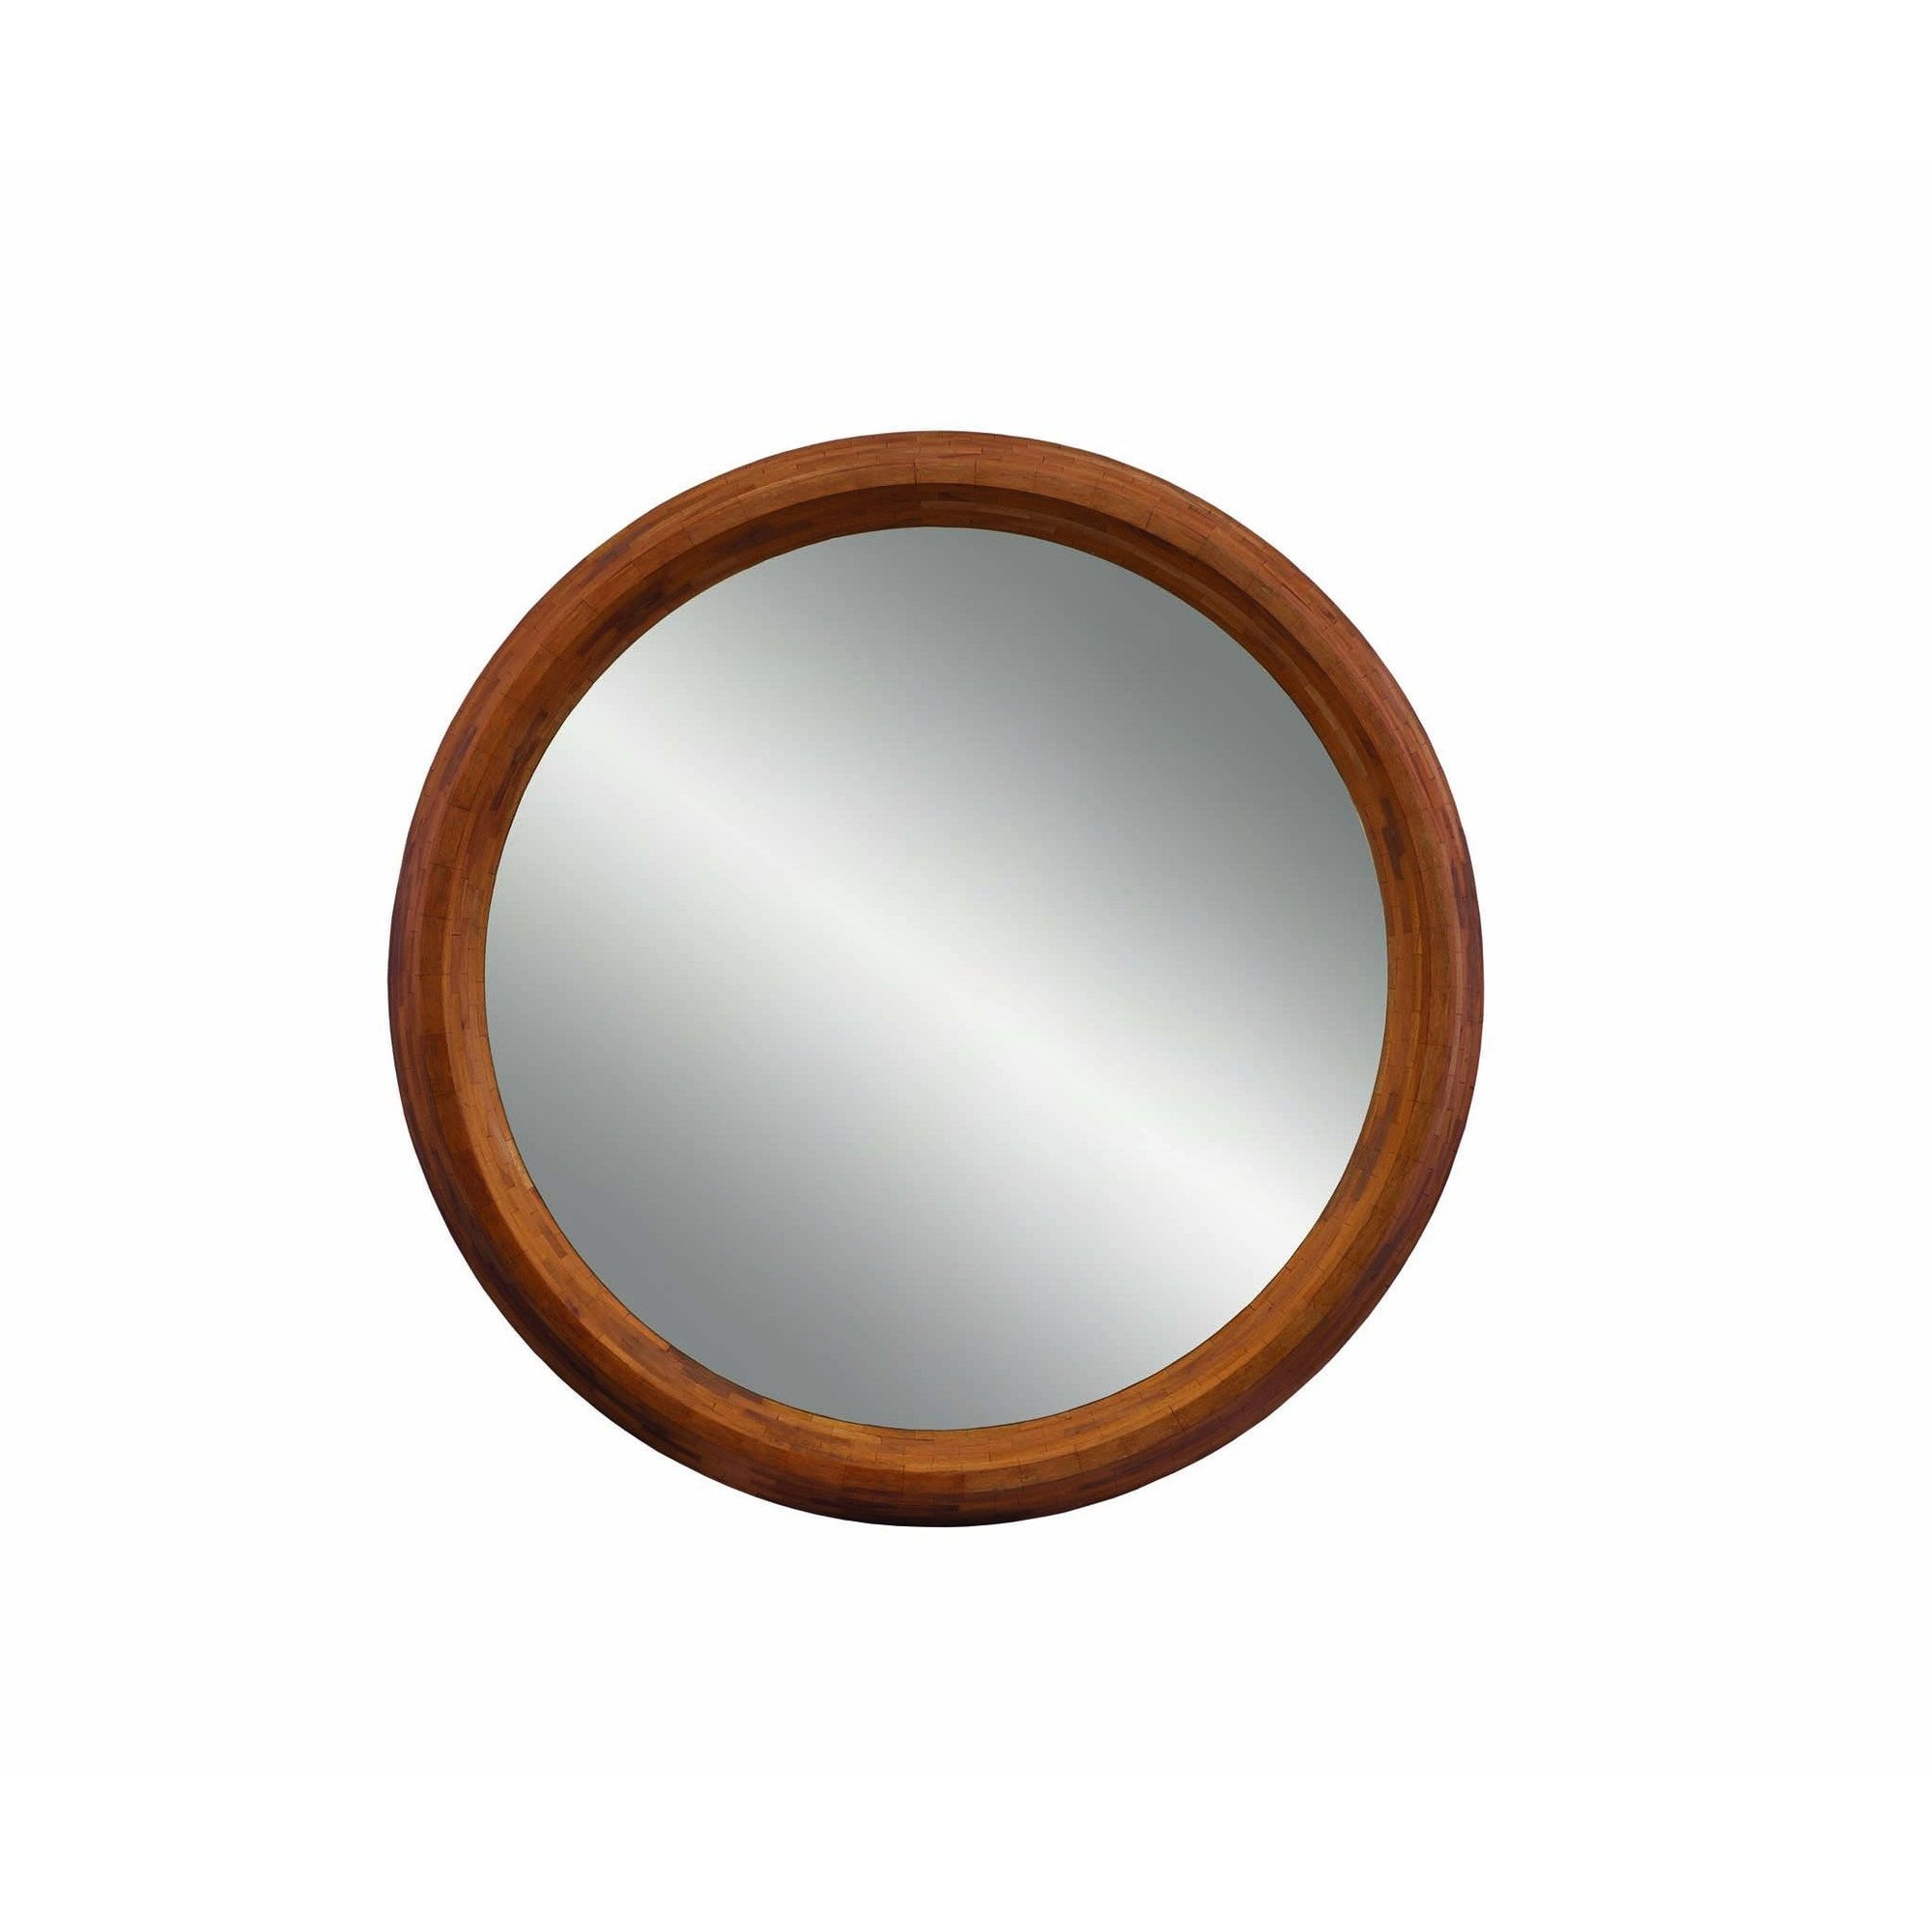 Kalco Lighting Mirrors Black Iron Lansdale Decorative Mirror By Kalco Lighting 505591